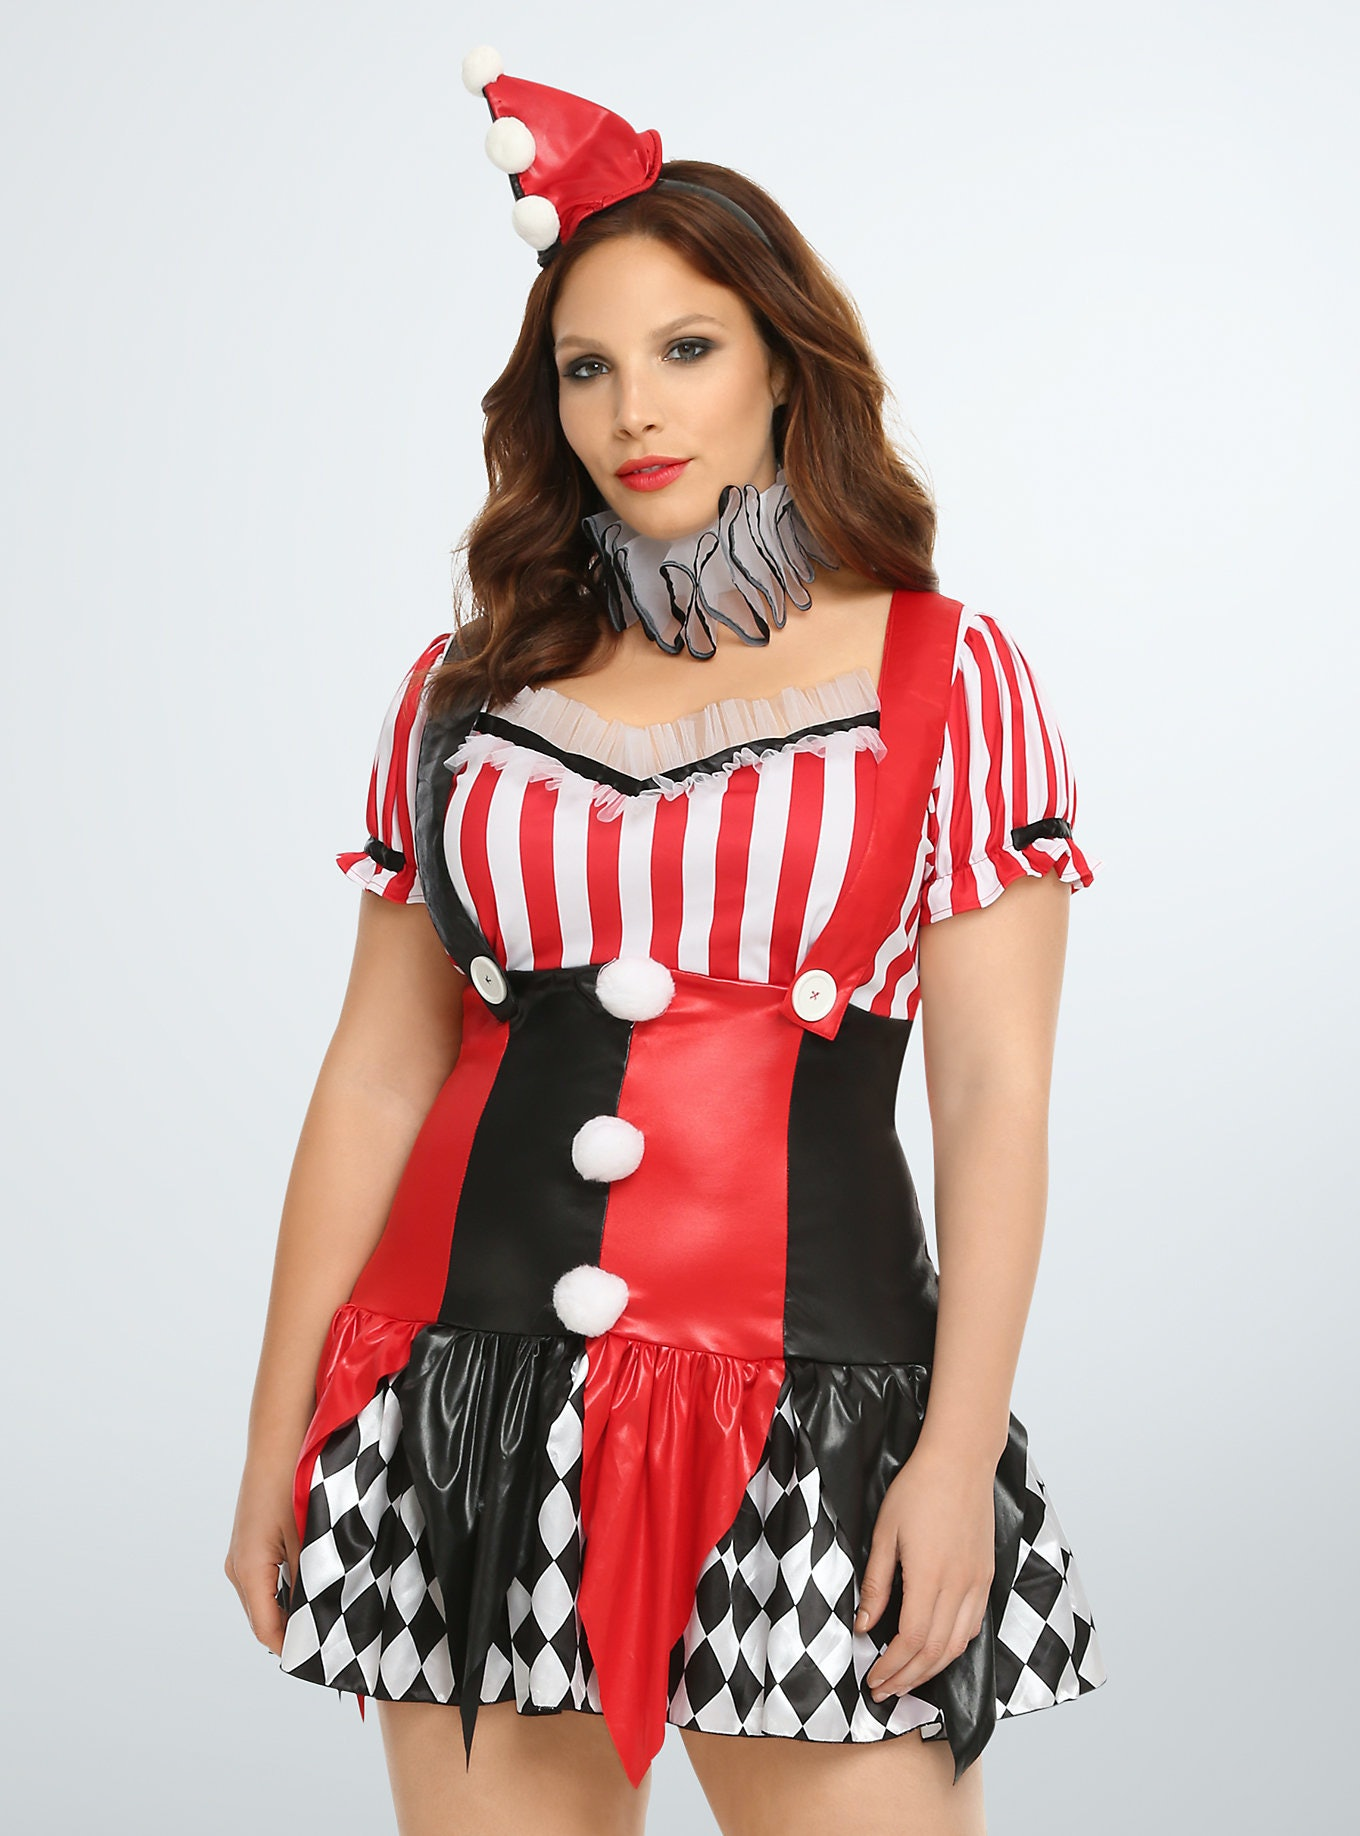 15 plus size halloween costumes that are ready to party